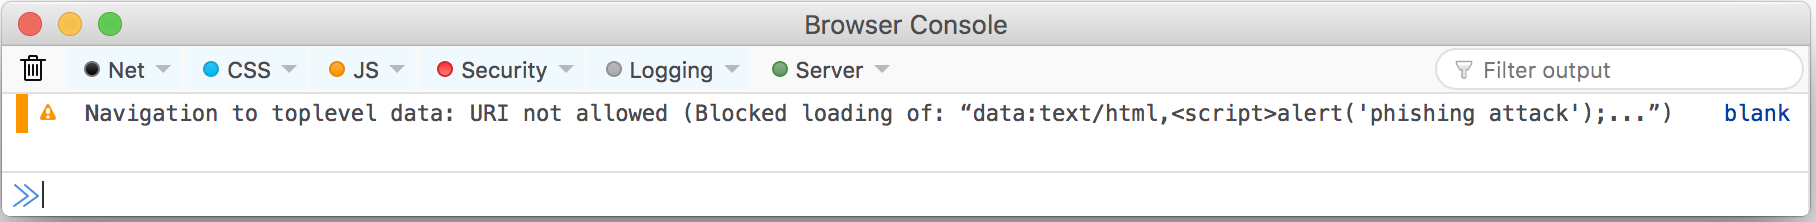 Blocking Top-Level Navigations to data URLs for Firefox 59